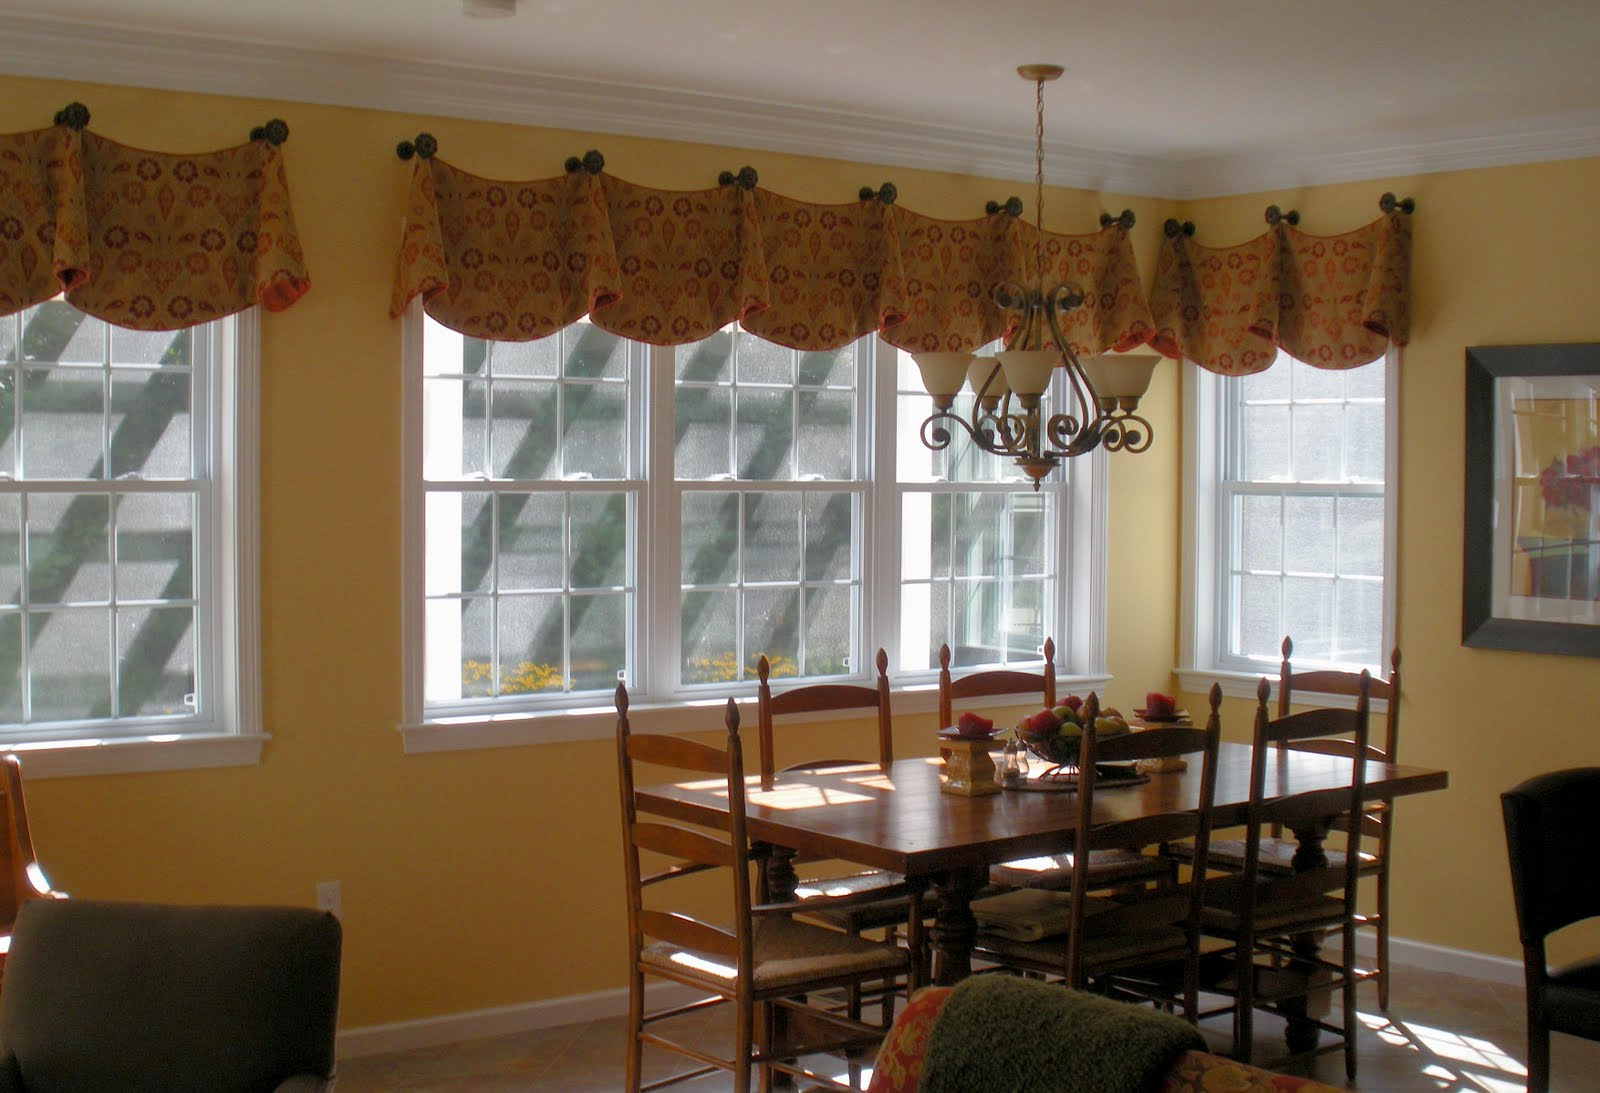 New England Style: My Favorite Valance with Contrast Fabric